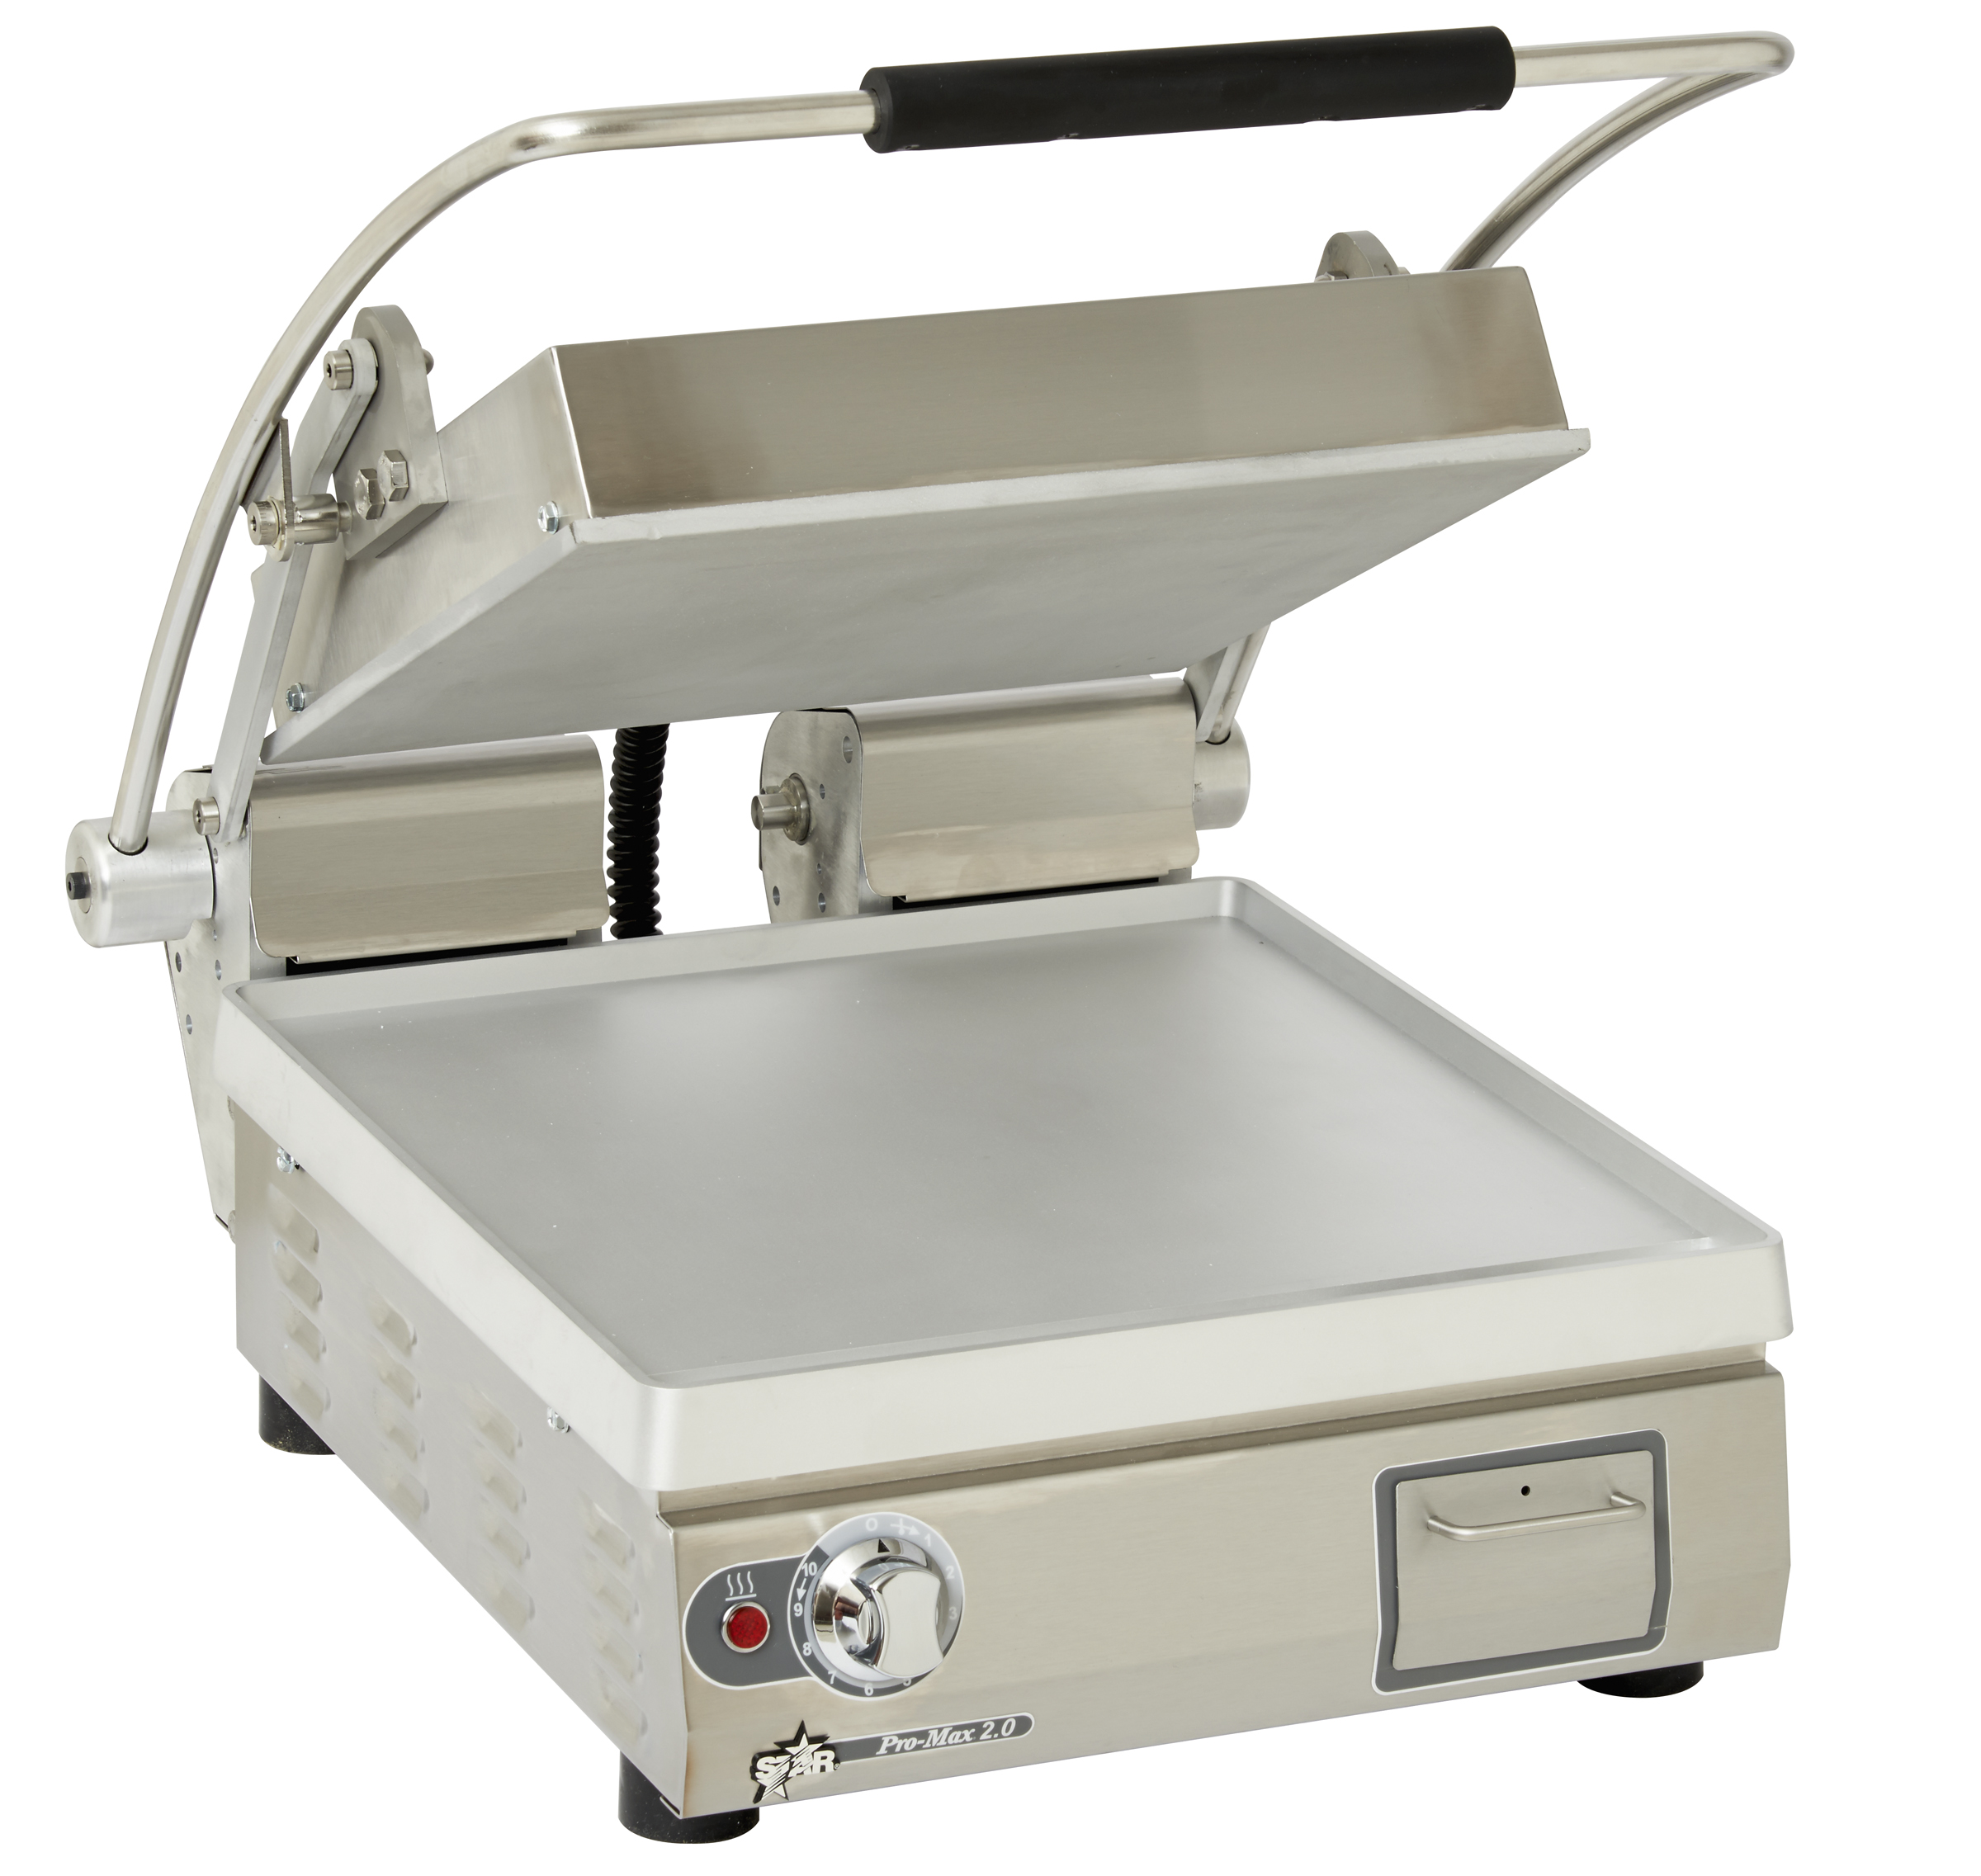 Pro-max 2.0 sandwich grill smooth -0